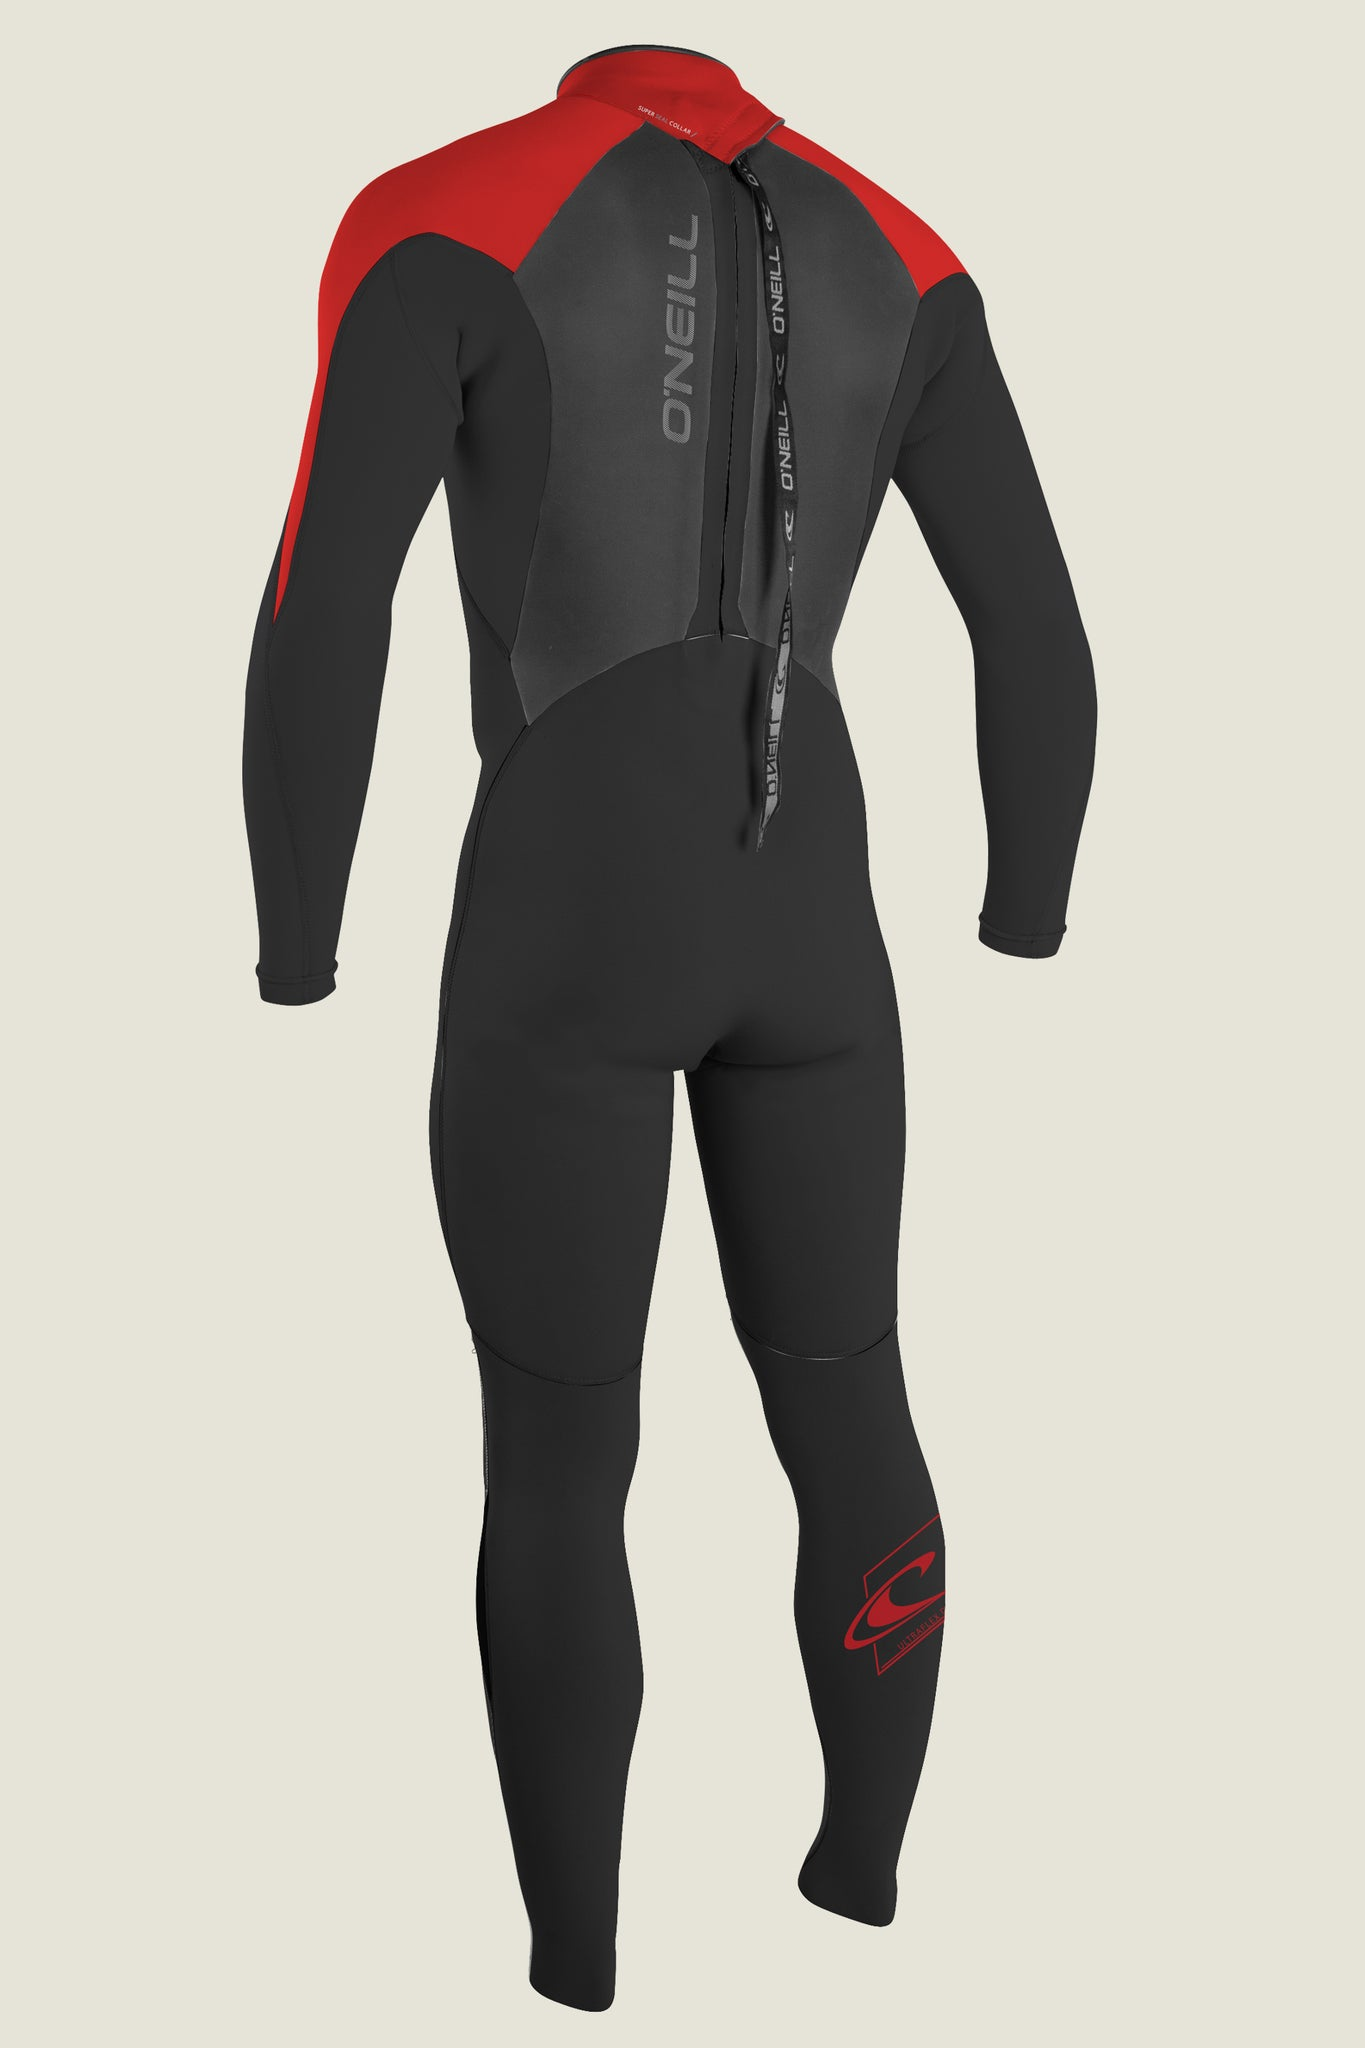 Youth Epic 4/3Mm Back Zip Full Wetsuit - Mniteoil/Mniteoil/Red | O'Neill